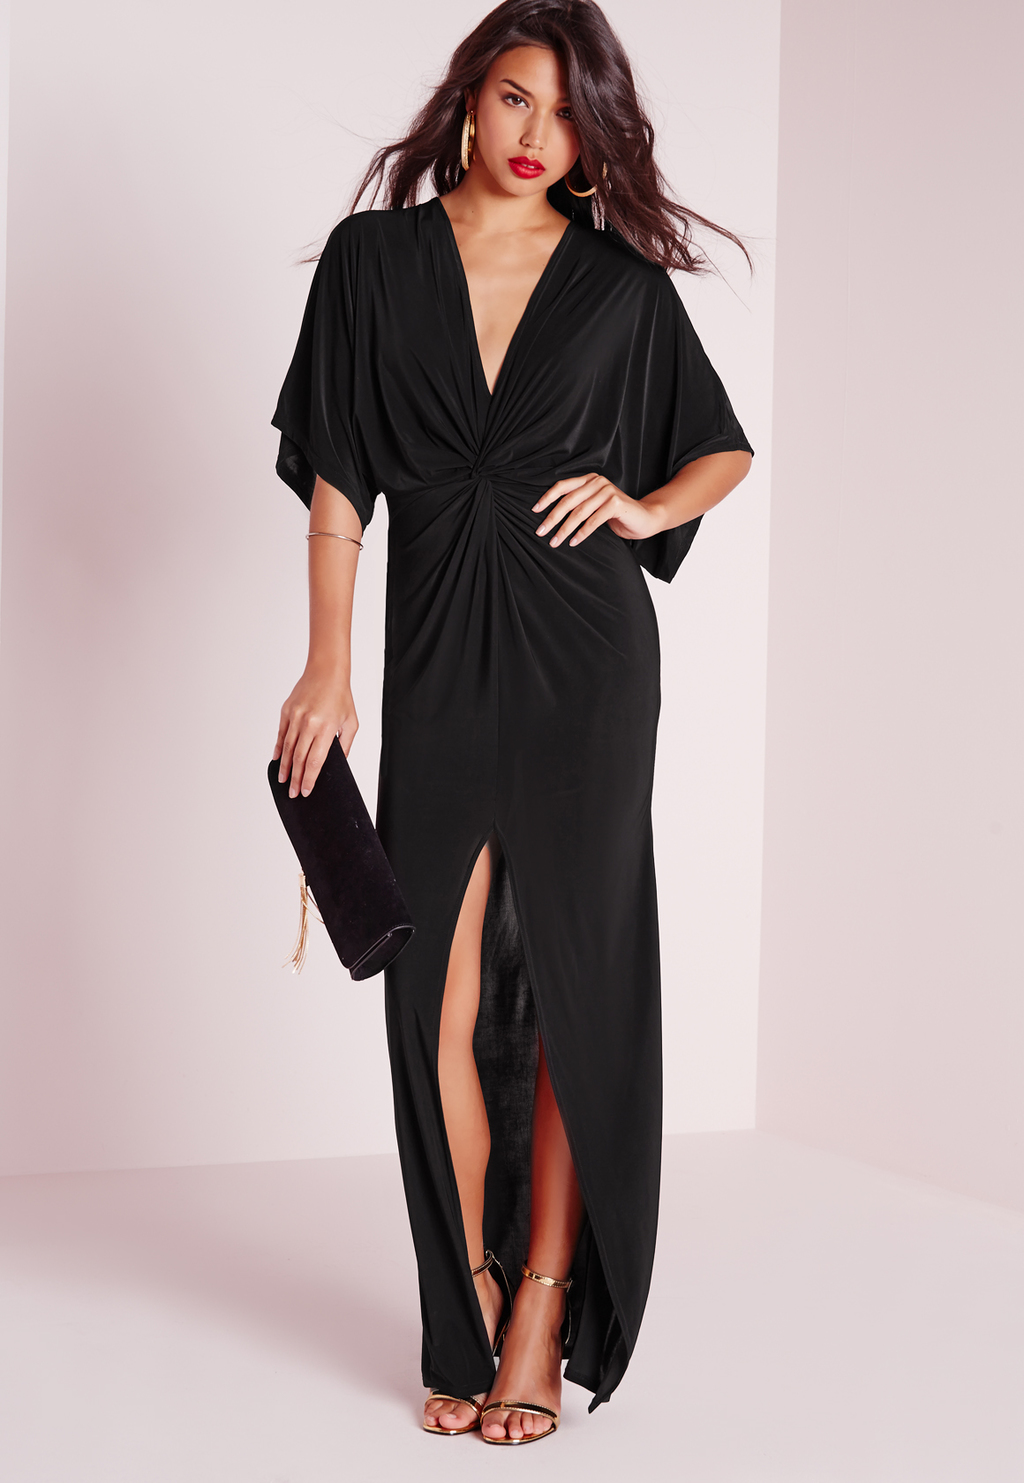 Slinky Kimono Maxi Dress Black, Black - neckline: low v-neck; sleeve style: dolman/batwing; pattern: plain; style: maxi dress; bust detail: ruching/gathering/draping/layers/pintuck pleats at bust; predominant colour: black; length: floor length; fit: body skimming; fibres: viscose/rayon - stretch; occasions: occasion; sleeve length: half sleeve; pattern type: fabric; texture group: other - light to midweight; season: s/s 2016